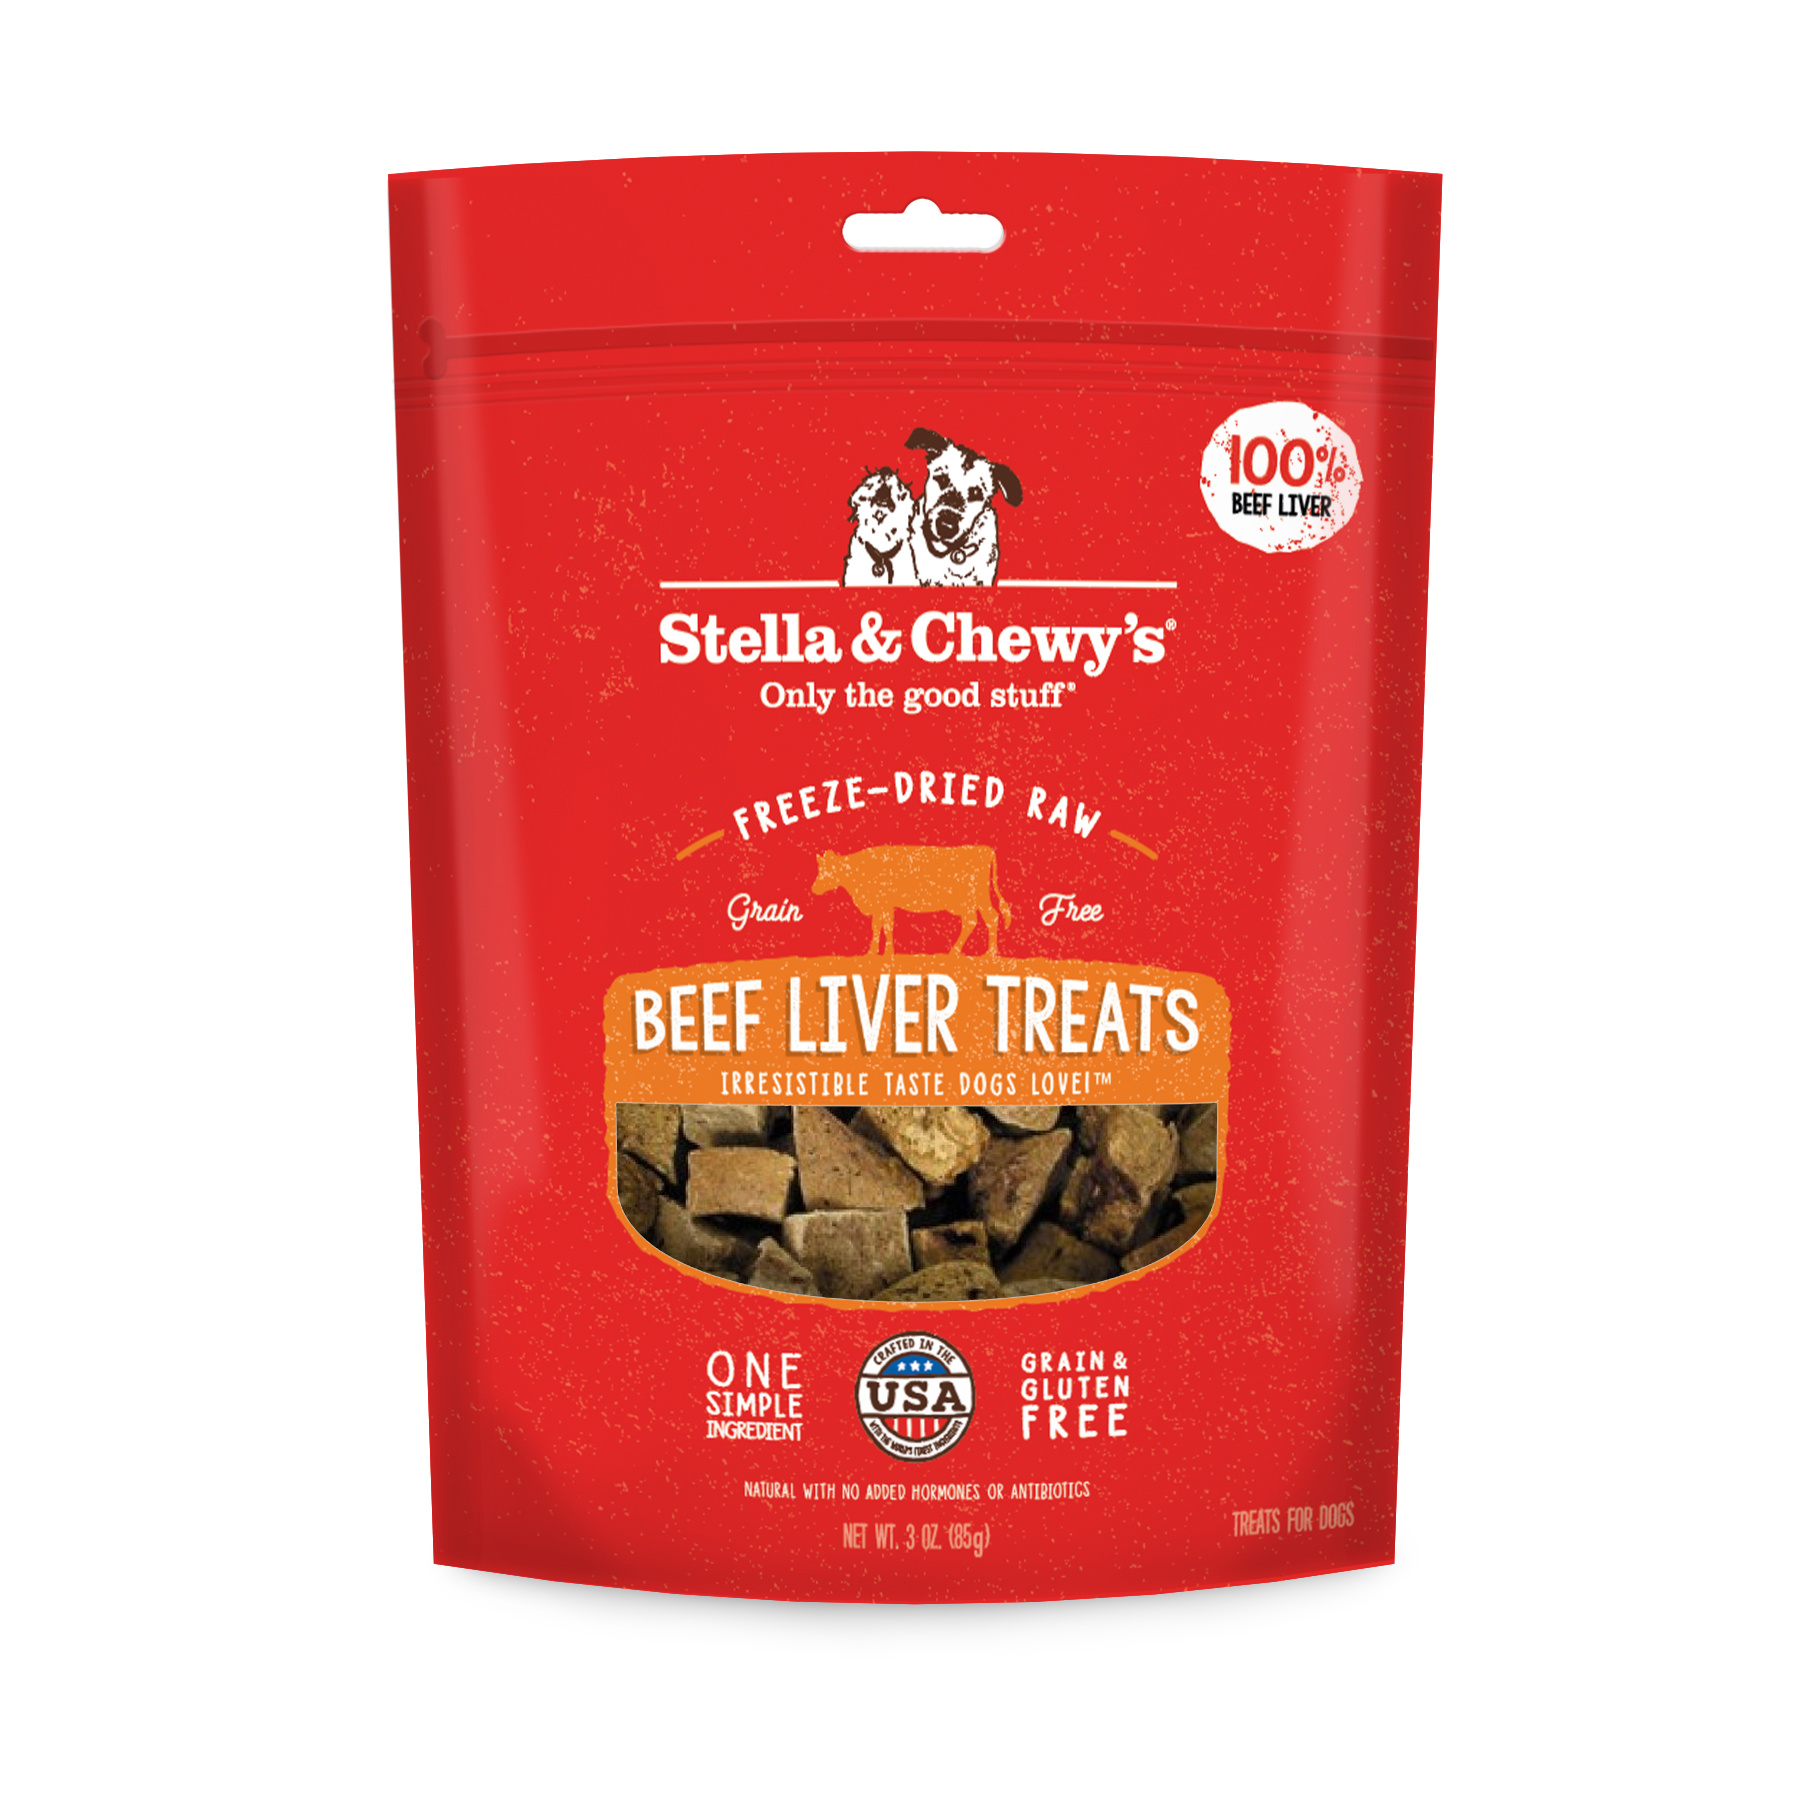 Stella & Chewys Stella & Chewys Freeze Dried Raw Beef Liver Treats 3oz